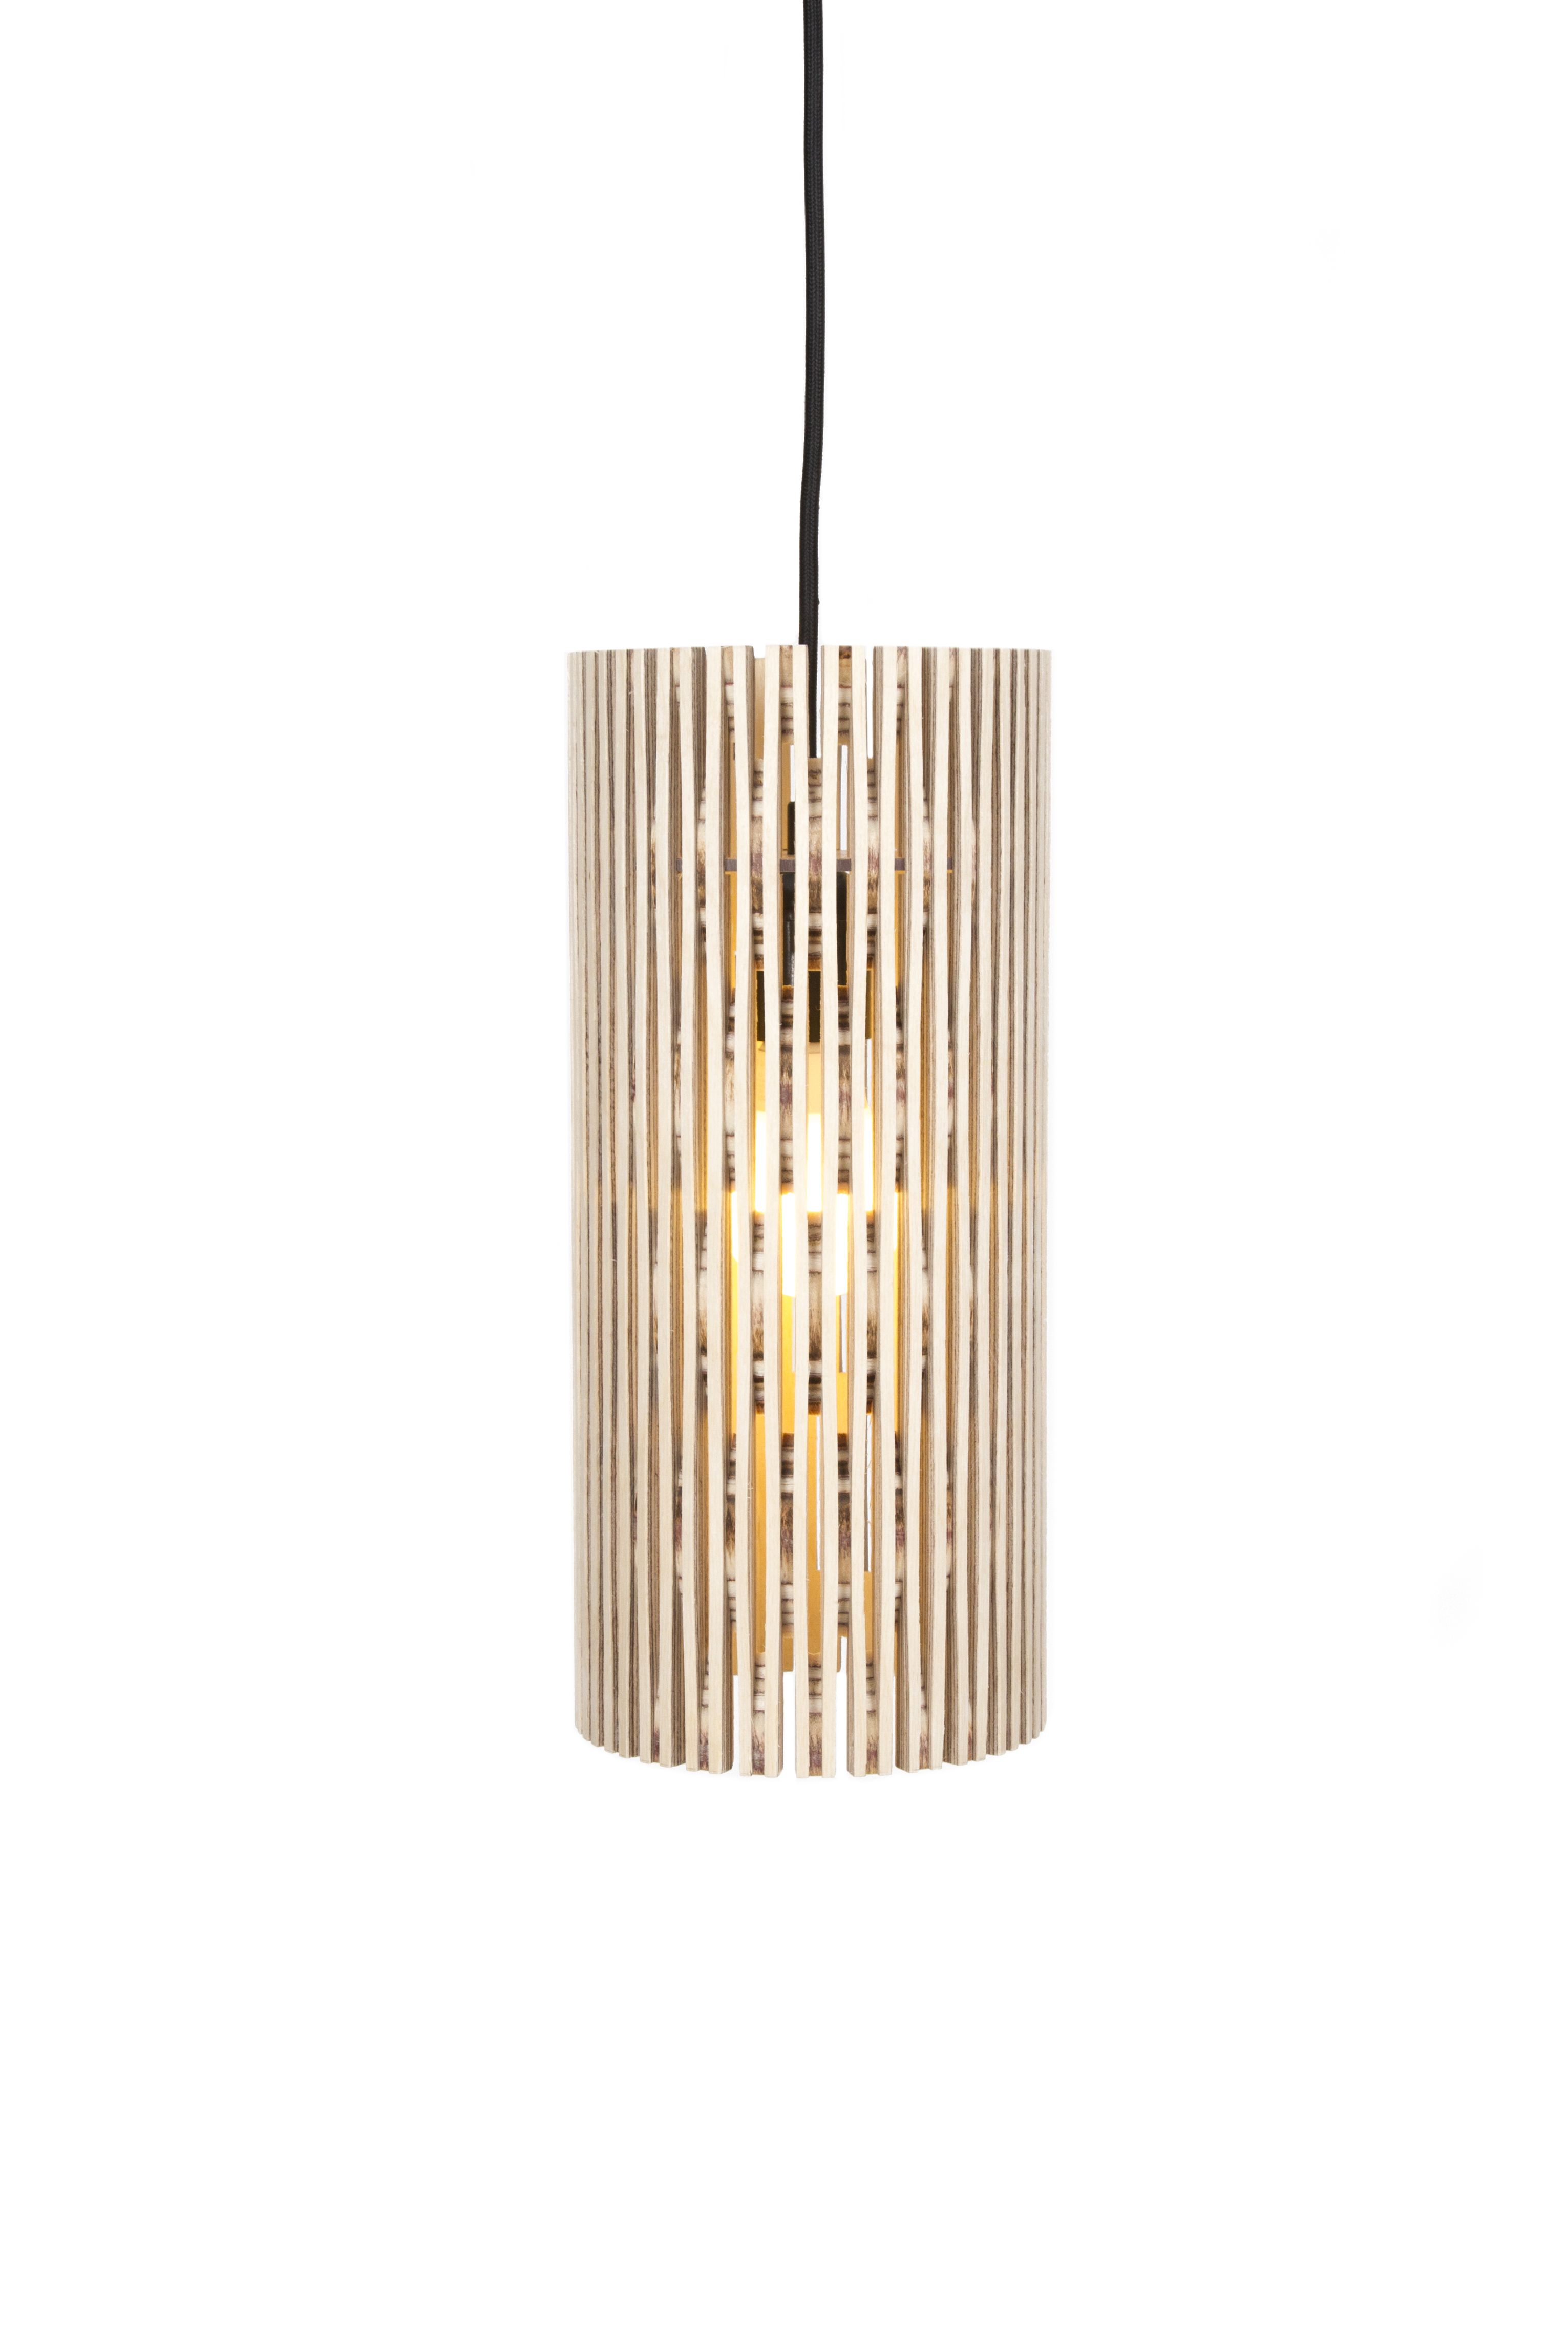 dukta Ora The cylindric luminaire is made from a single